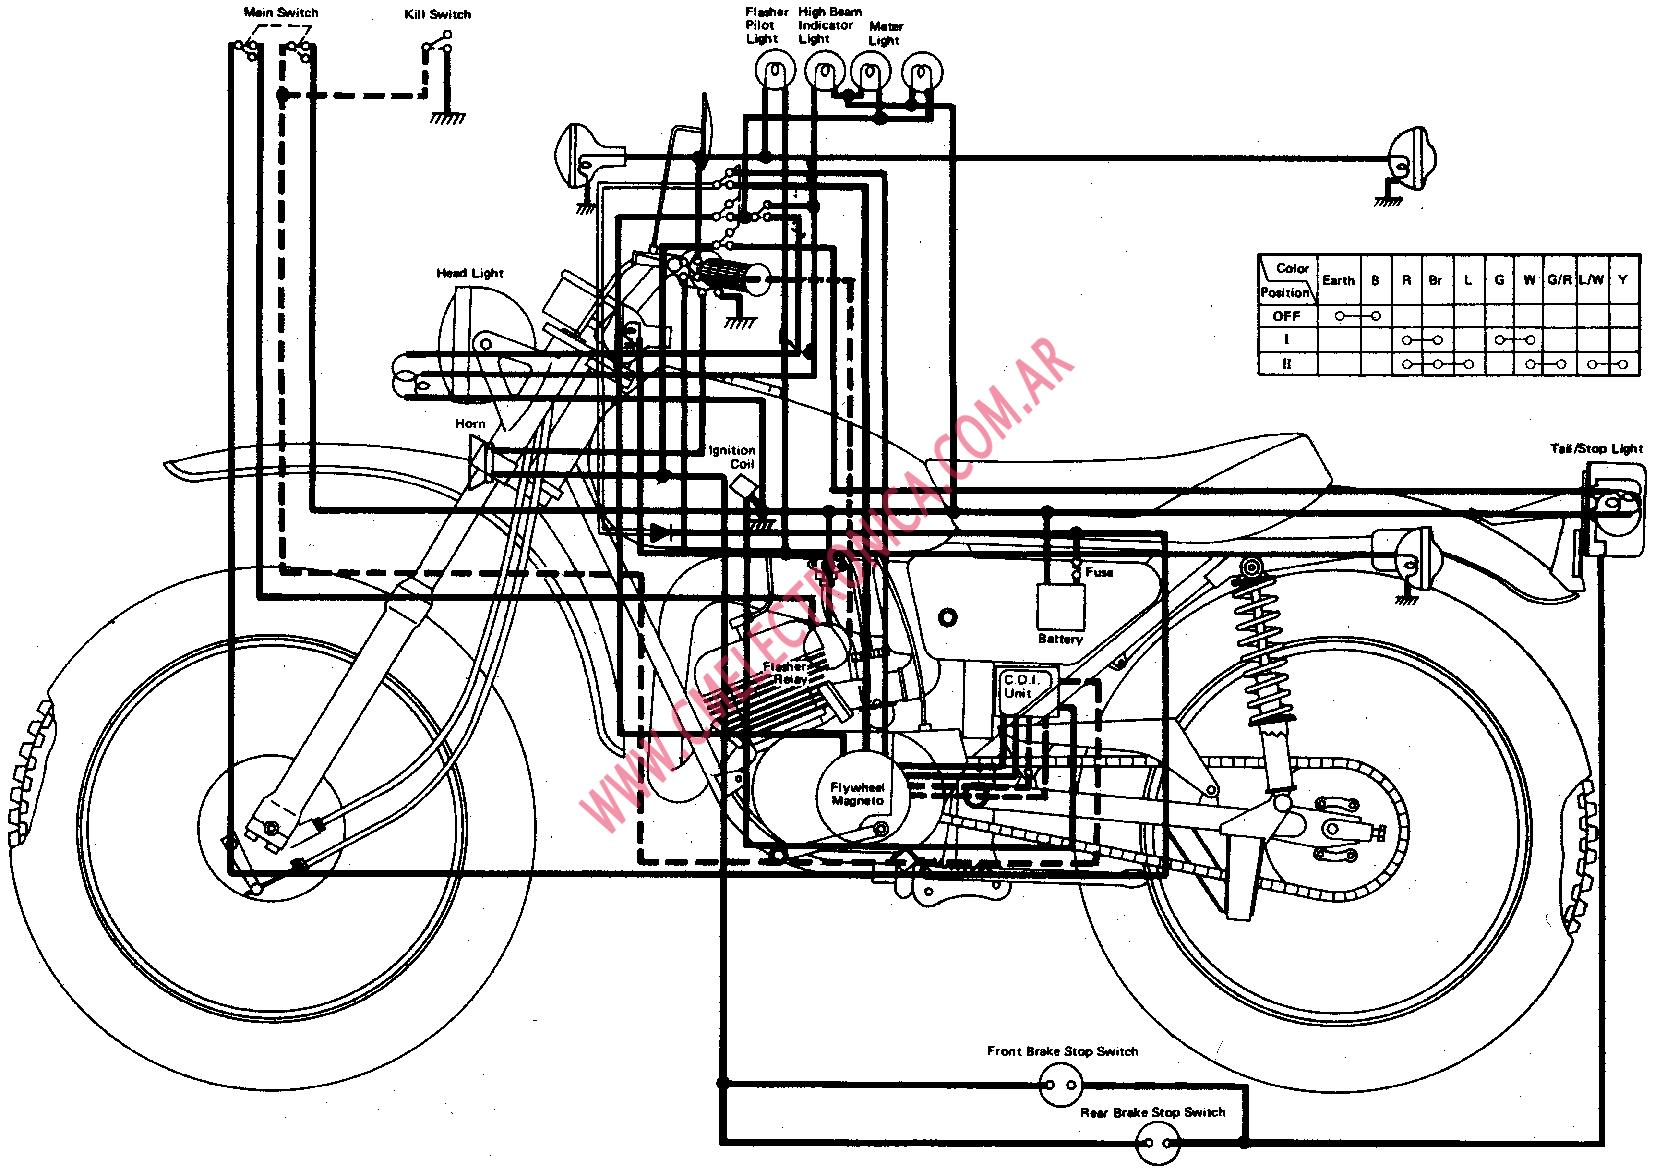 yamaha dt 100 wiring machine repair manual Yamaha DT 125 2000